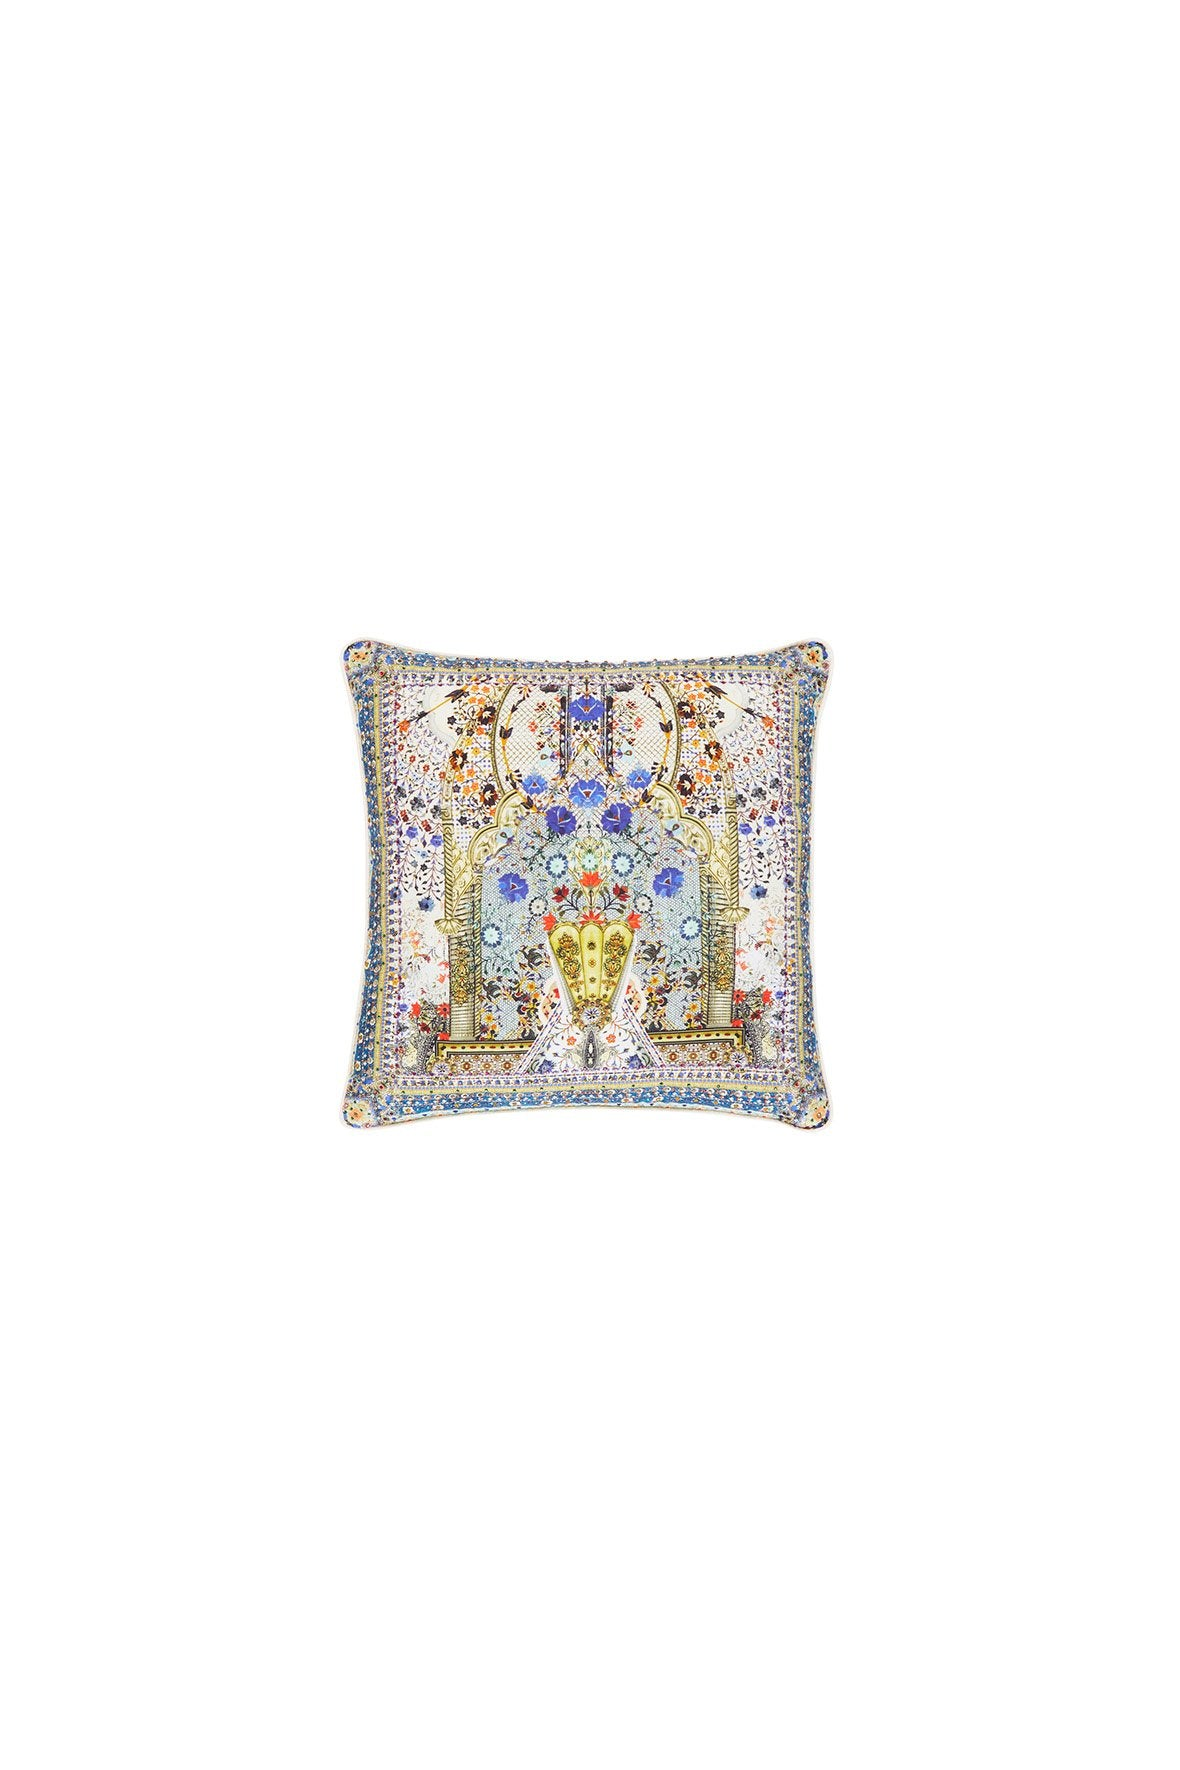 THE BUTTERFLY EFFECT SMALL SQUARE CUSHION